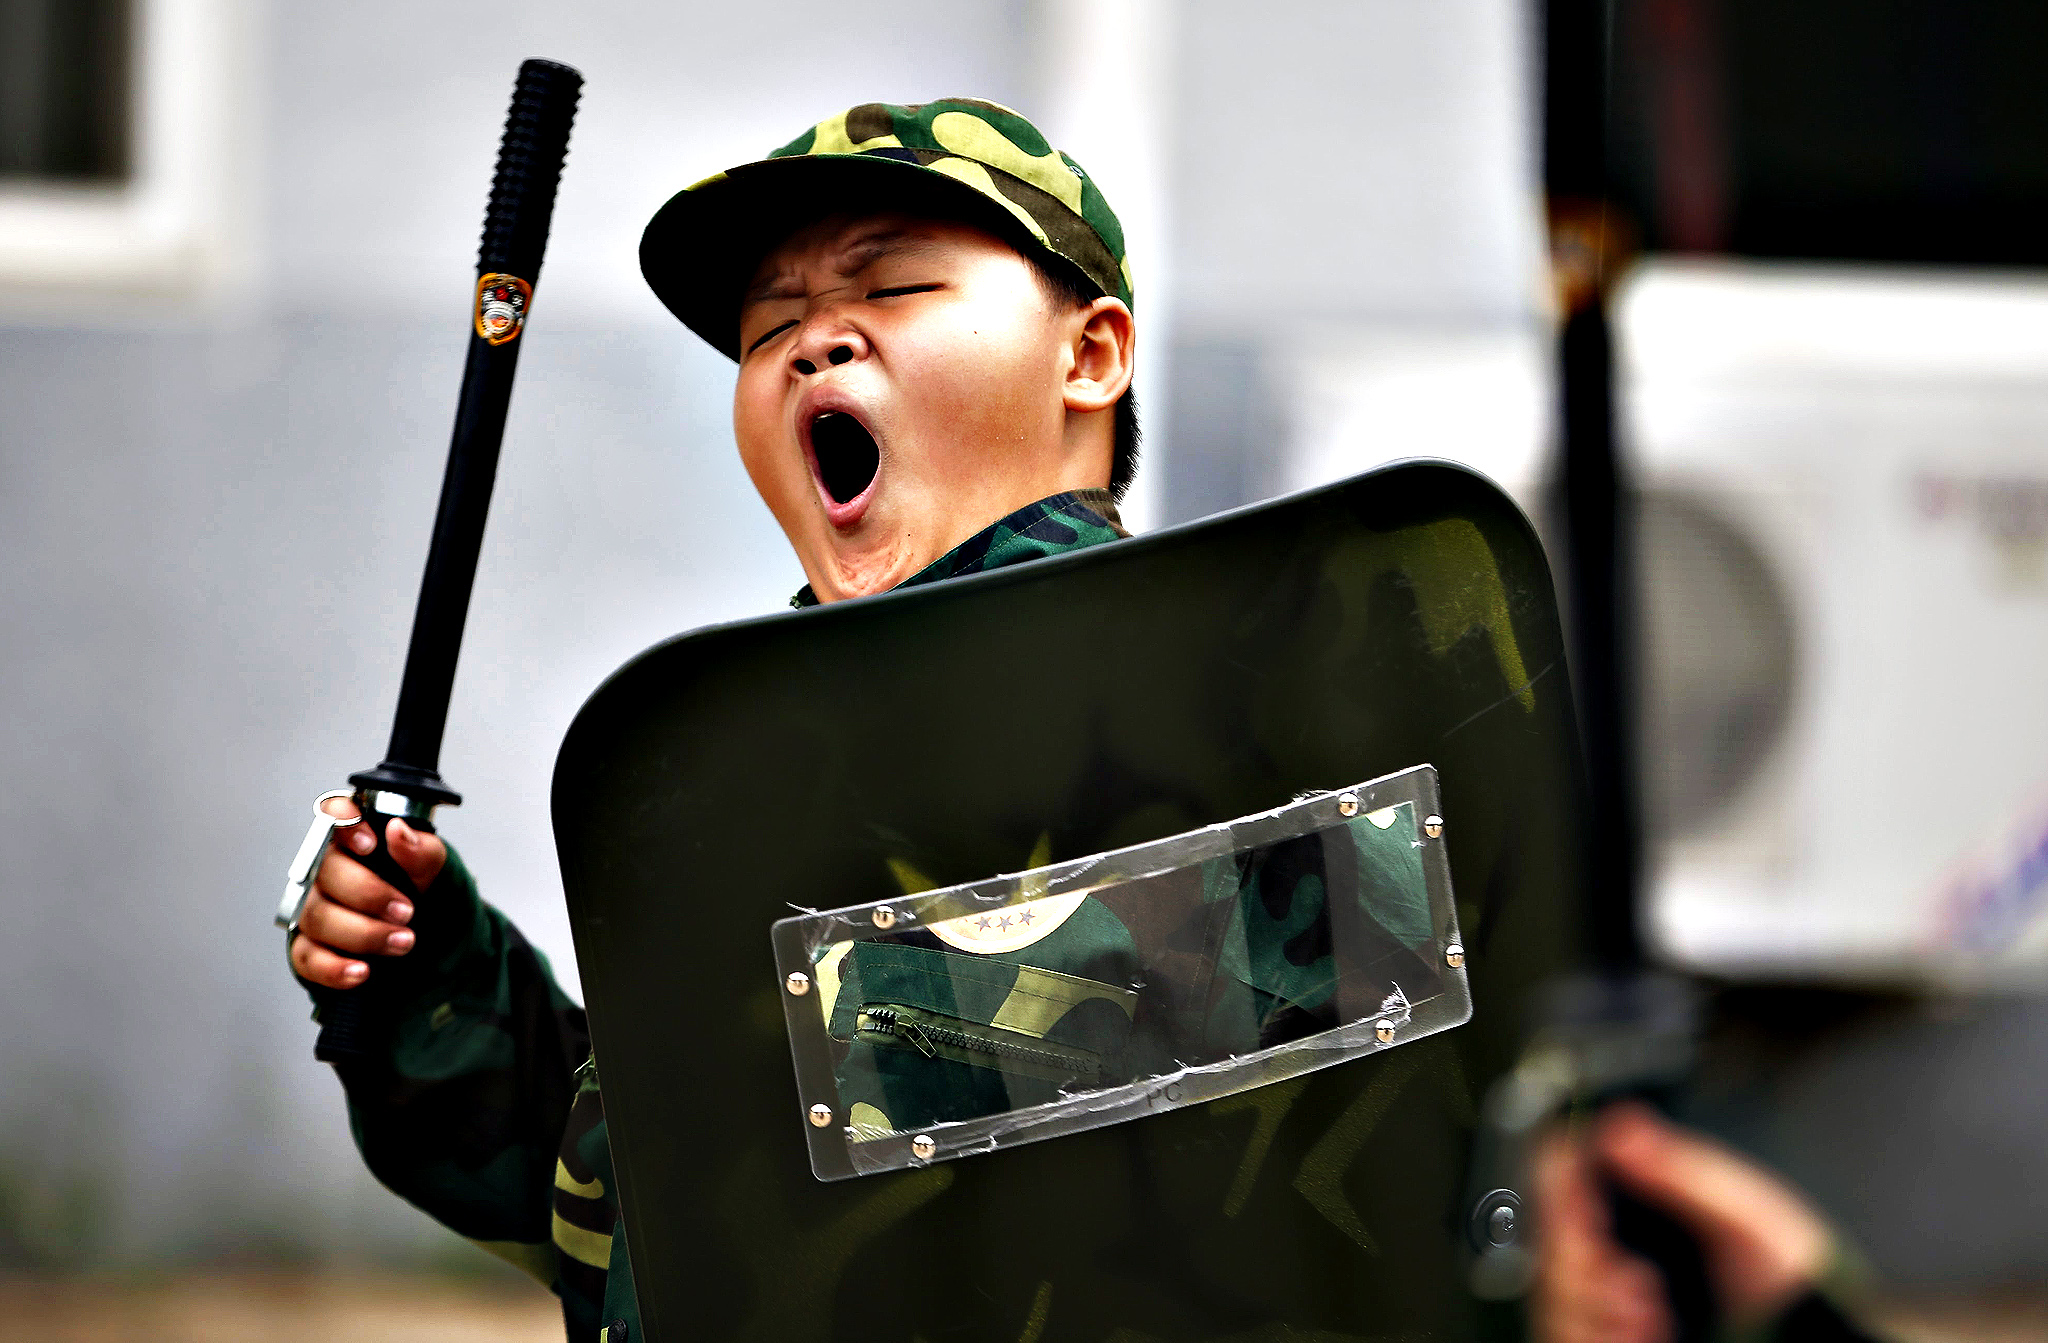 A young boy yawns during early morning self defense training at a summer boot camp on the outskirts of Beijing, China. Running in its fifth year, the youth military summer camp first opened in 2008, when it only had a handful of students signed up. Today the camp caters to over 2,000 kids a year over a two month period. The camp is ran mainly by former military, police, and fire fighters, looking after kids ranging from 6 to 17 years of age, with 70 percent being boys and 30 percent girls.